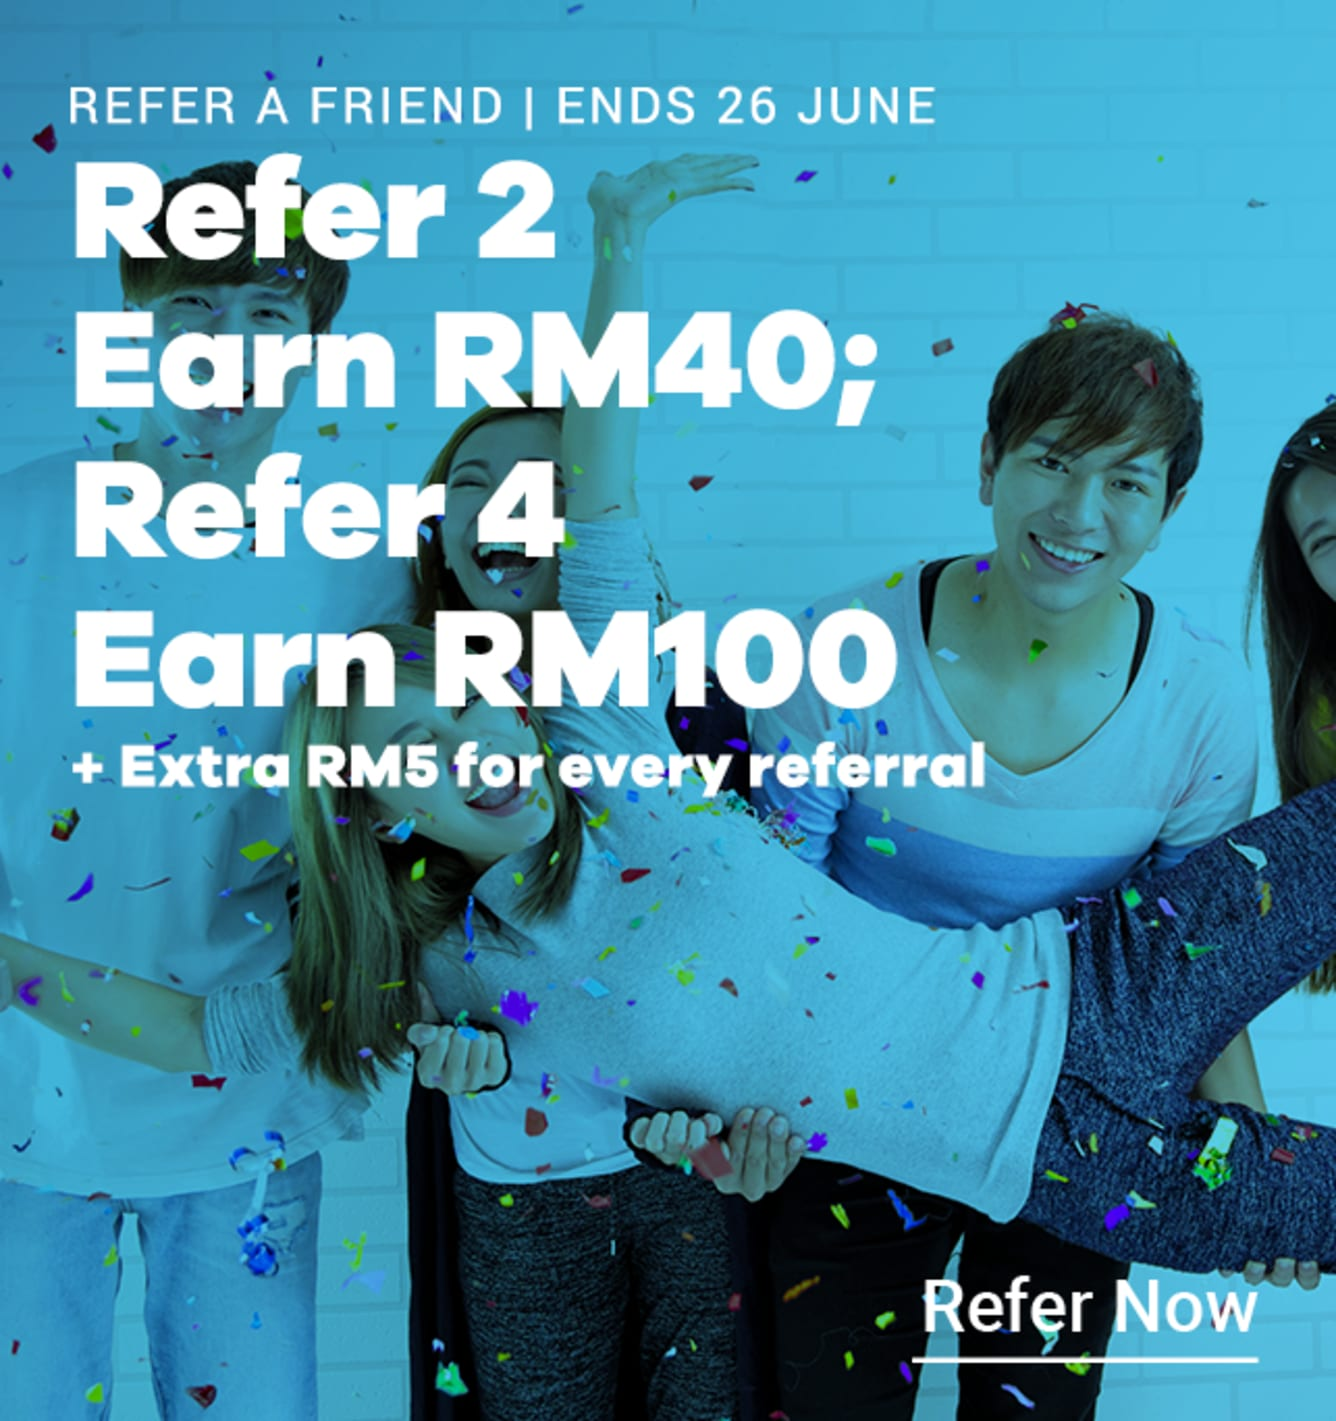 Refer 1 friend, Earn RM 5